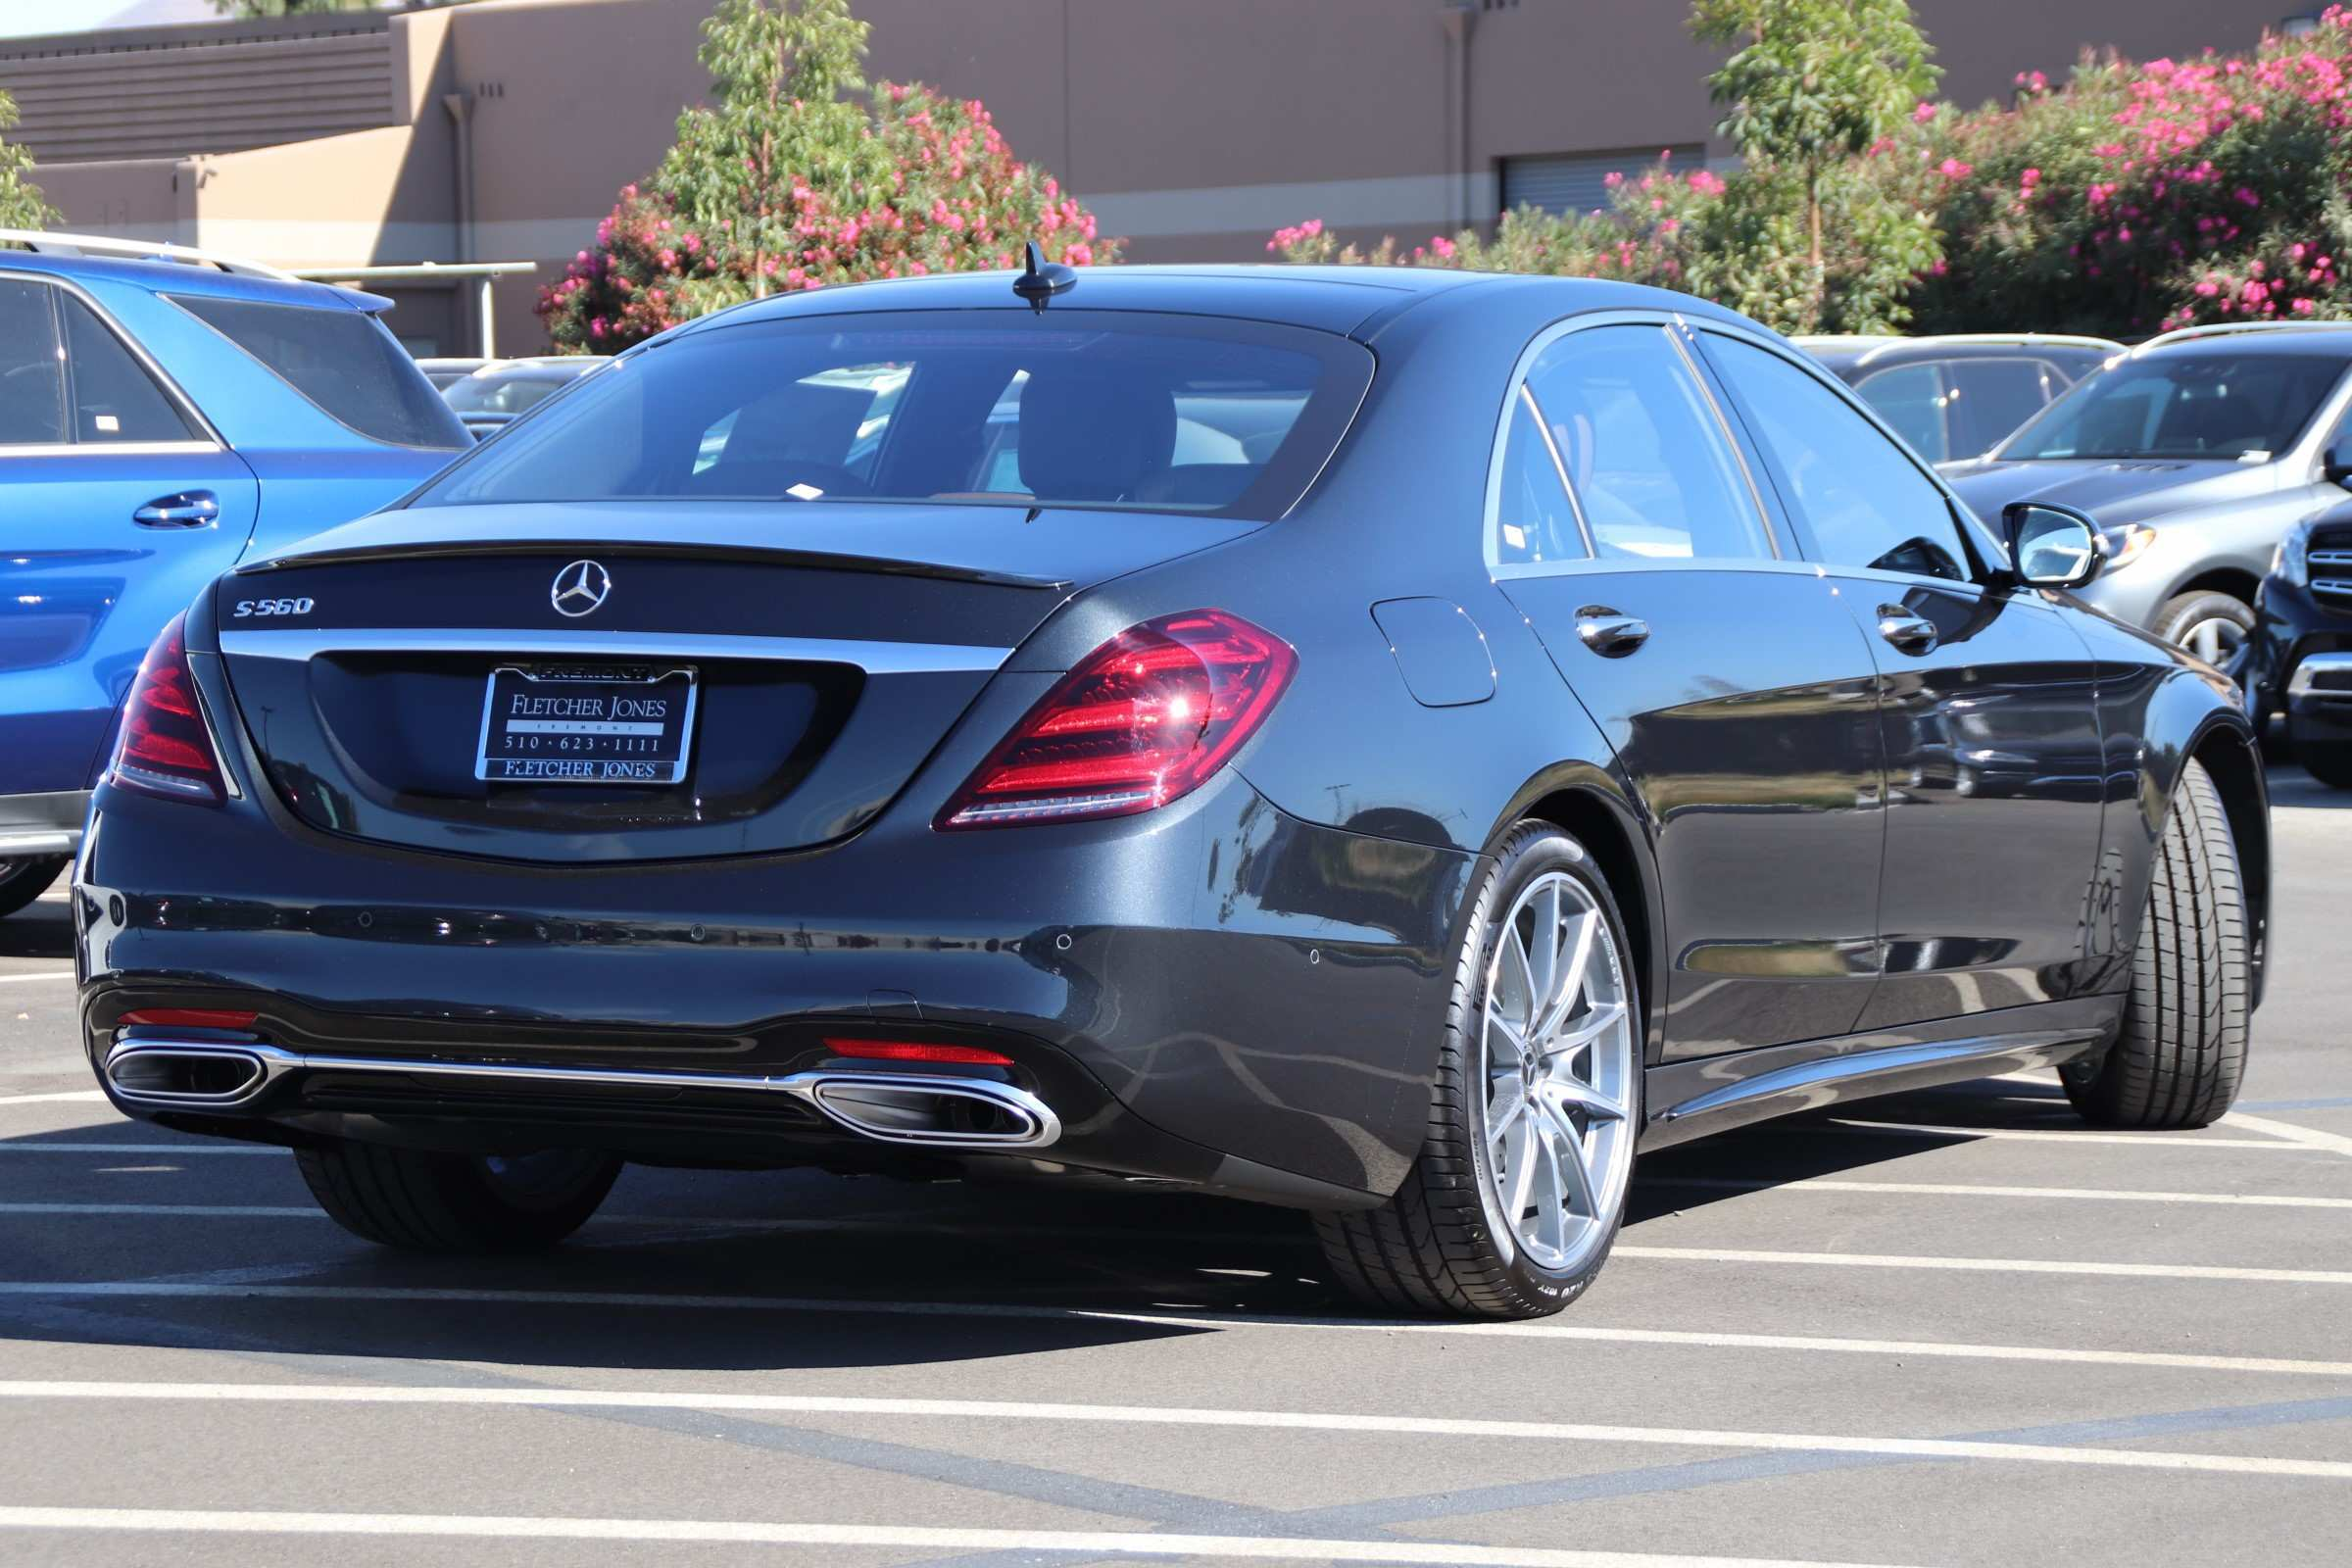 72 Great S560 Mercedes 2019 Pricing for S560 Mercedes 2019